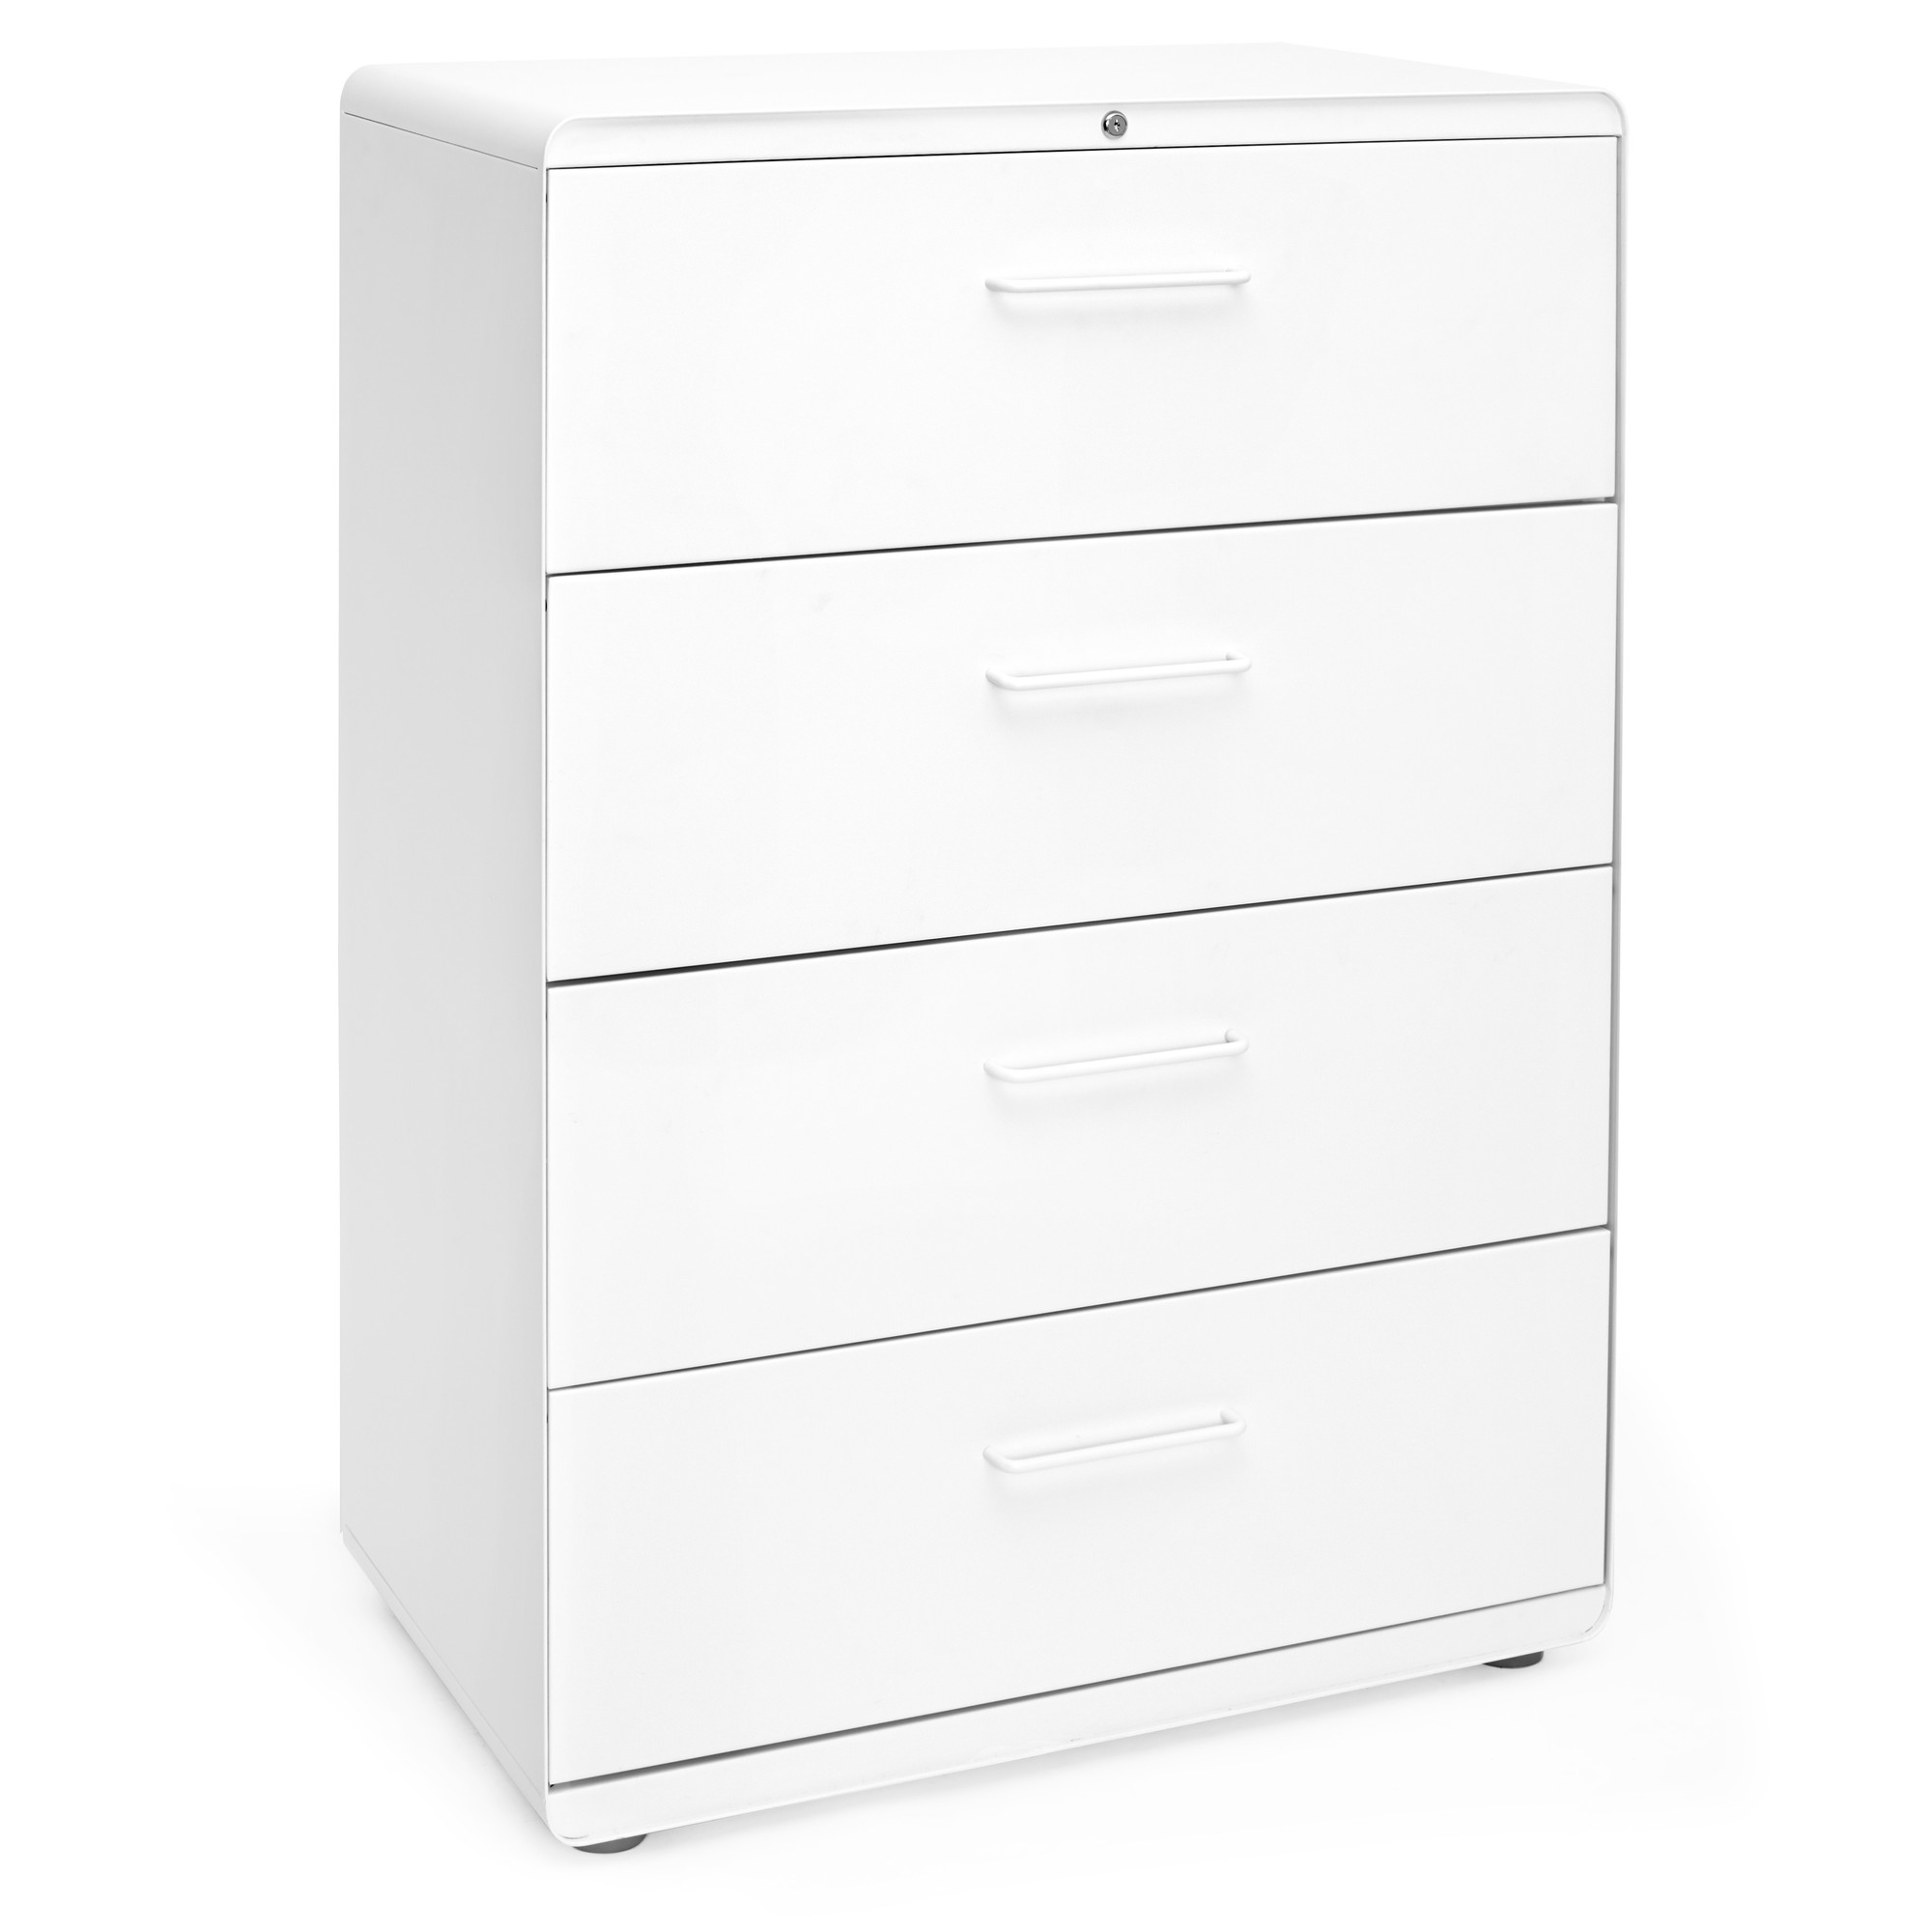 option best kitchen drawer cabinet cabinets the base drawers with